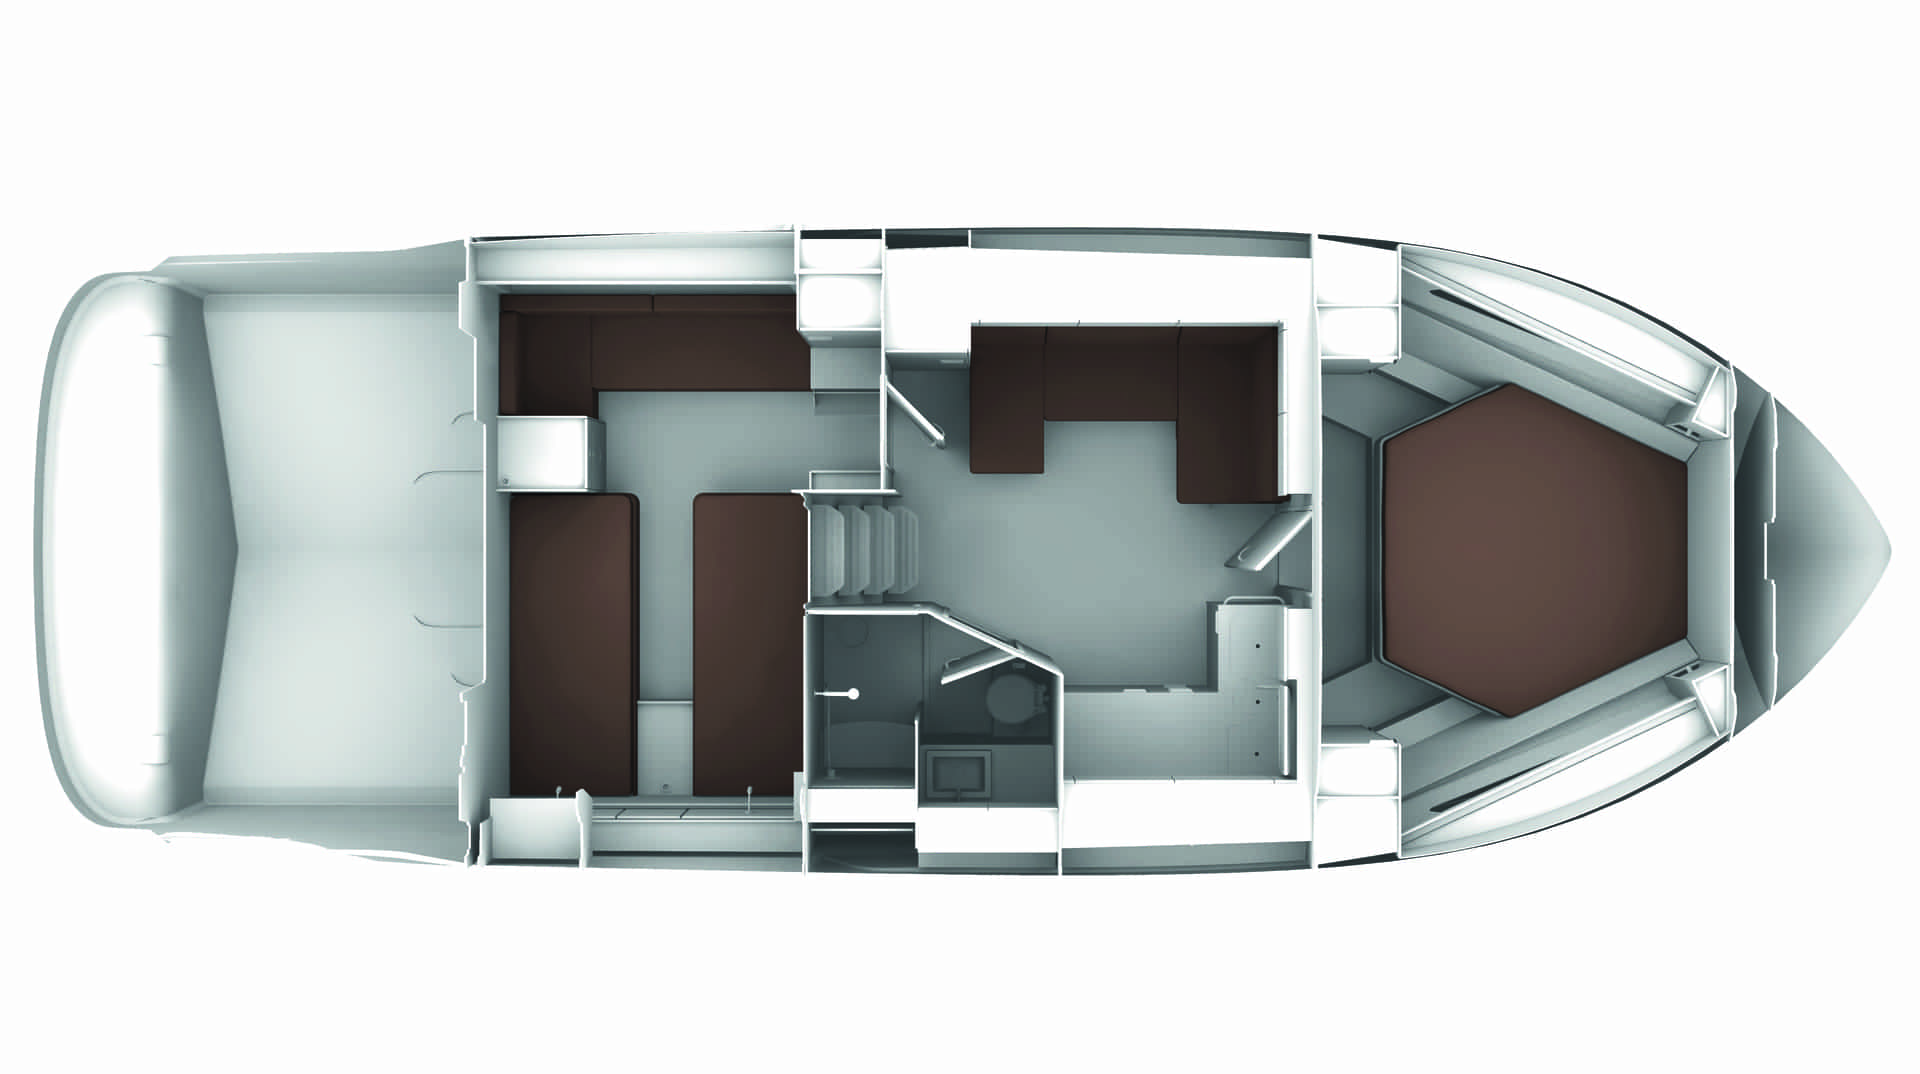 Bavaria S40 layout